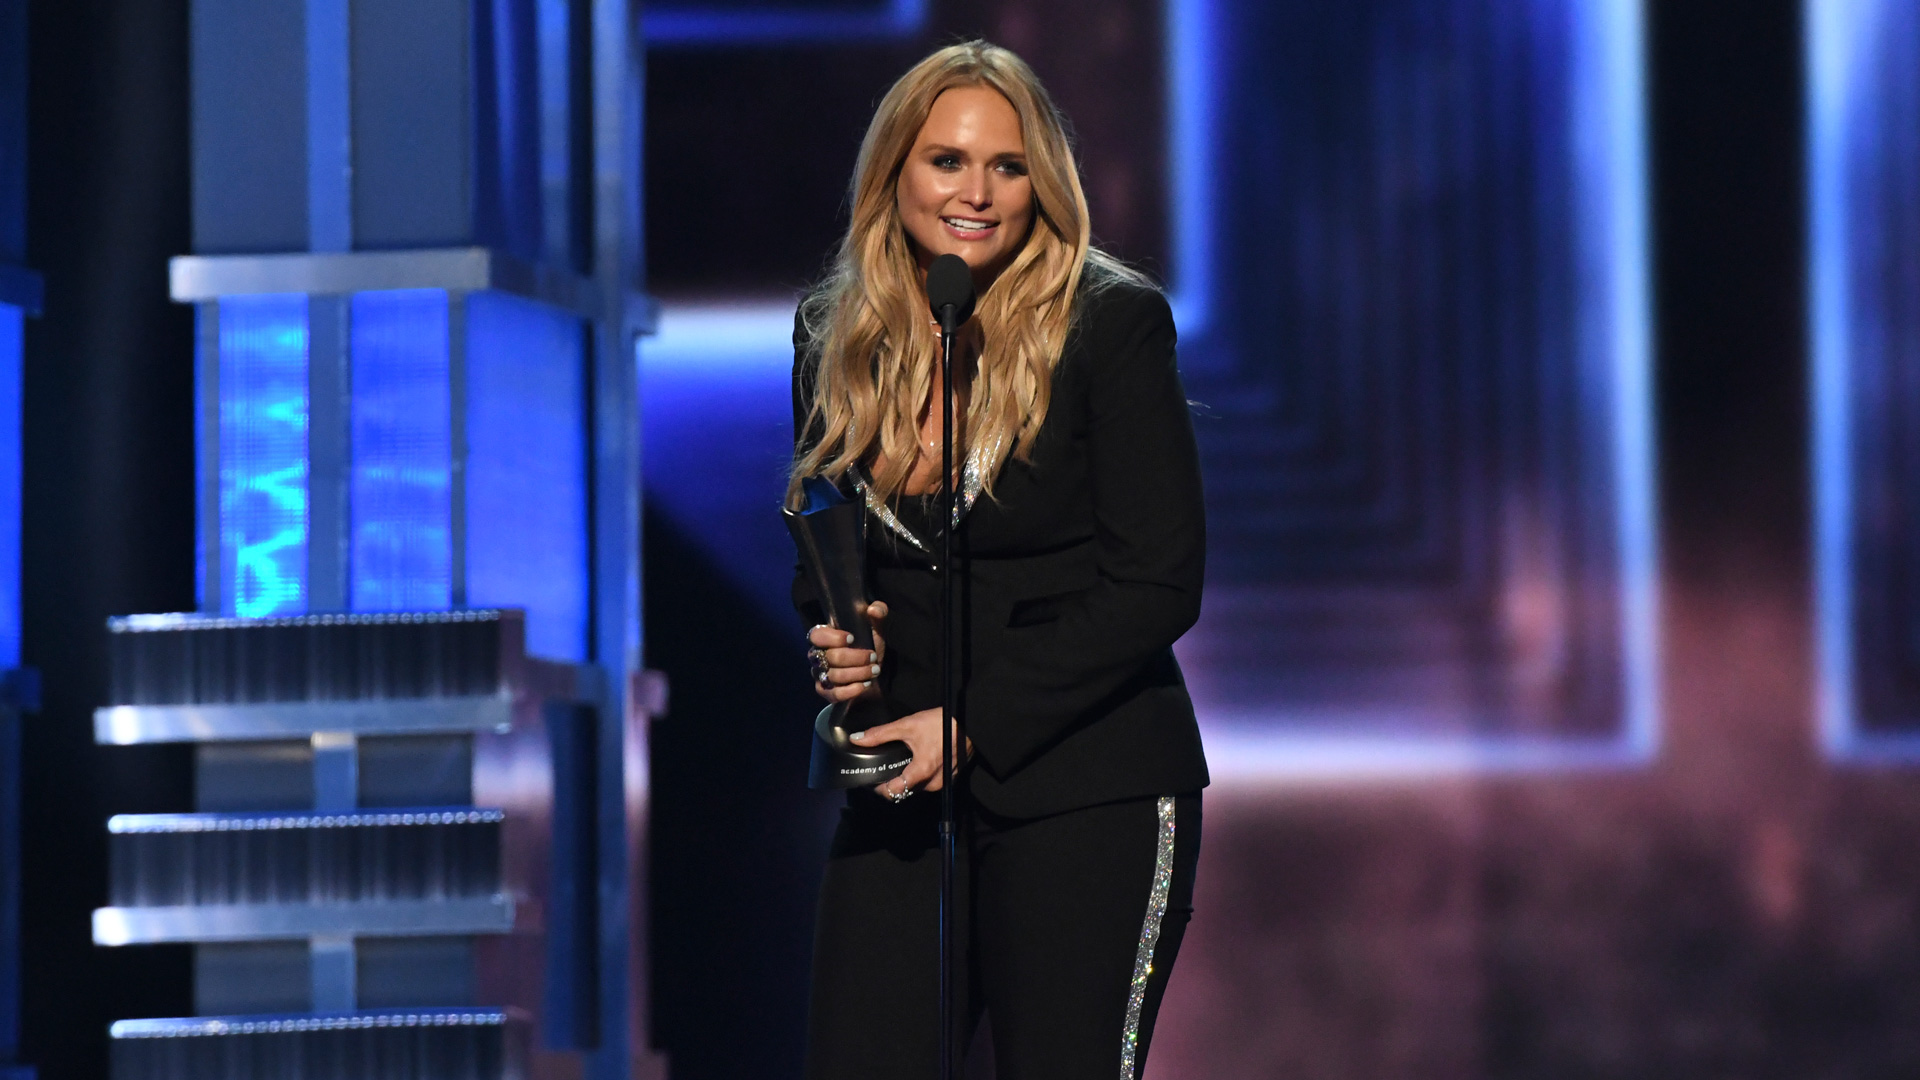 Miranda Lambert wins Female Vocalist Of The Year at the 52nd ACM Awards